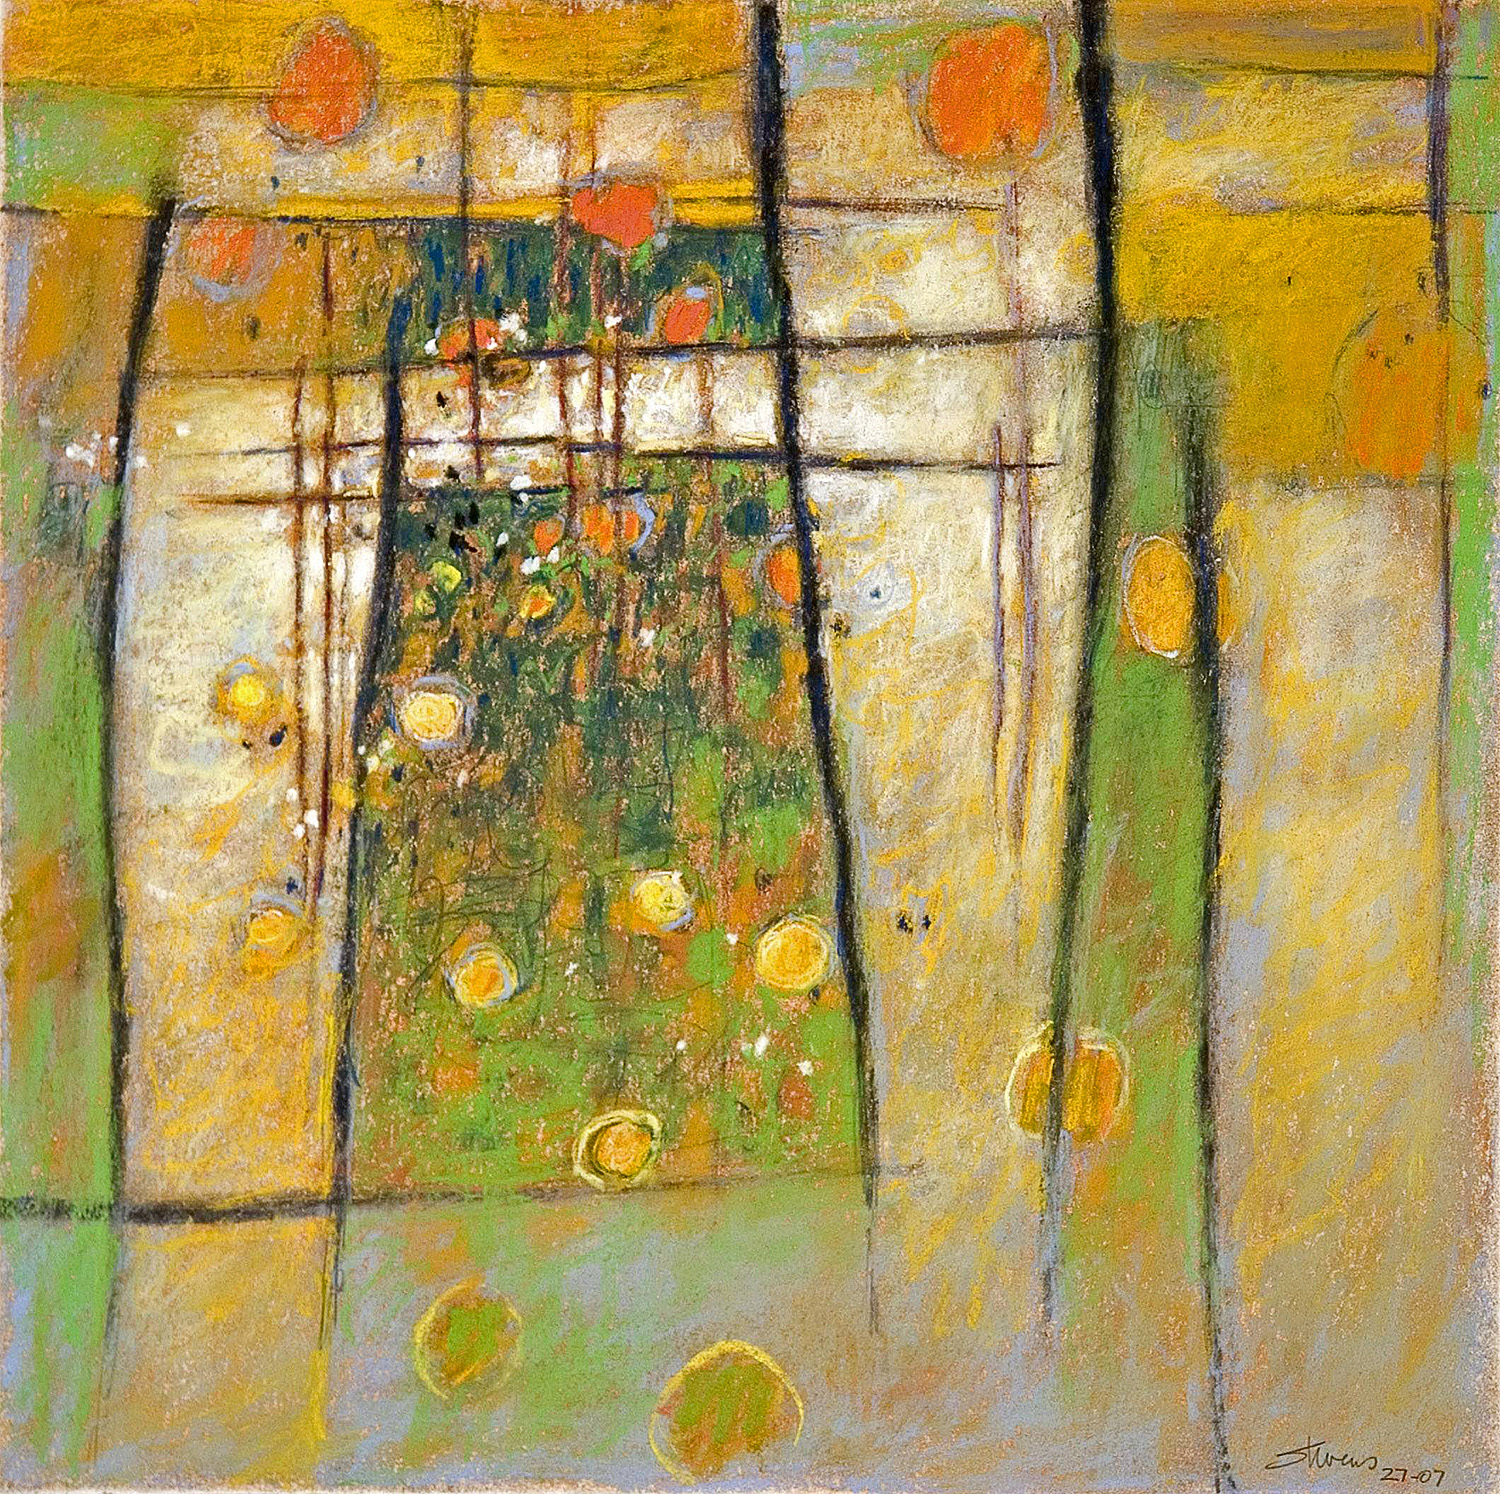 Floating and Dreaming   | pastel on paper | 14 x 14"